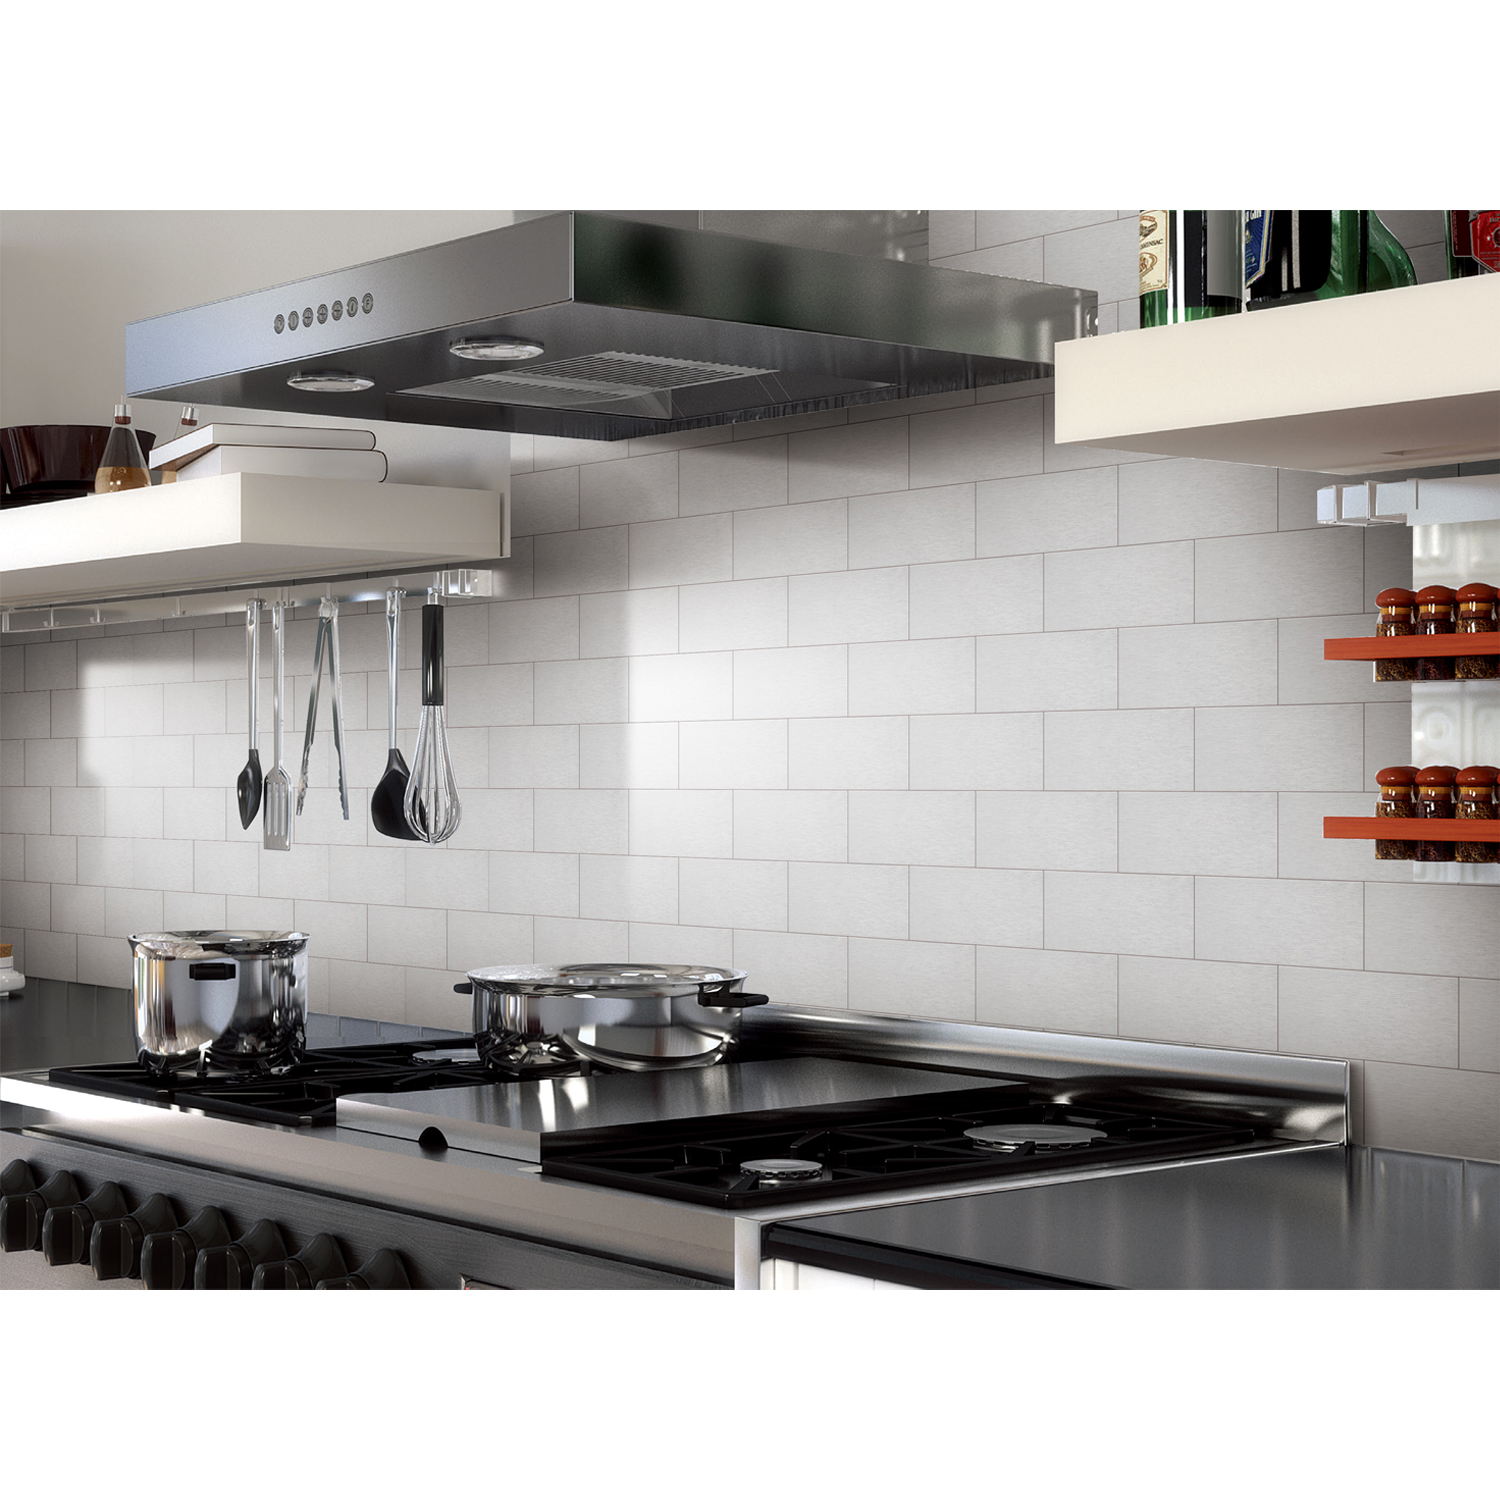 "Art3d 100-Pieces Peel and Stick Tile Kitchen Backsplash Metal Wall Tiles , 3"" x 6"" Brushed Aluminium Subway"